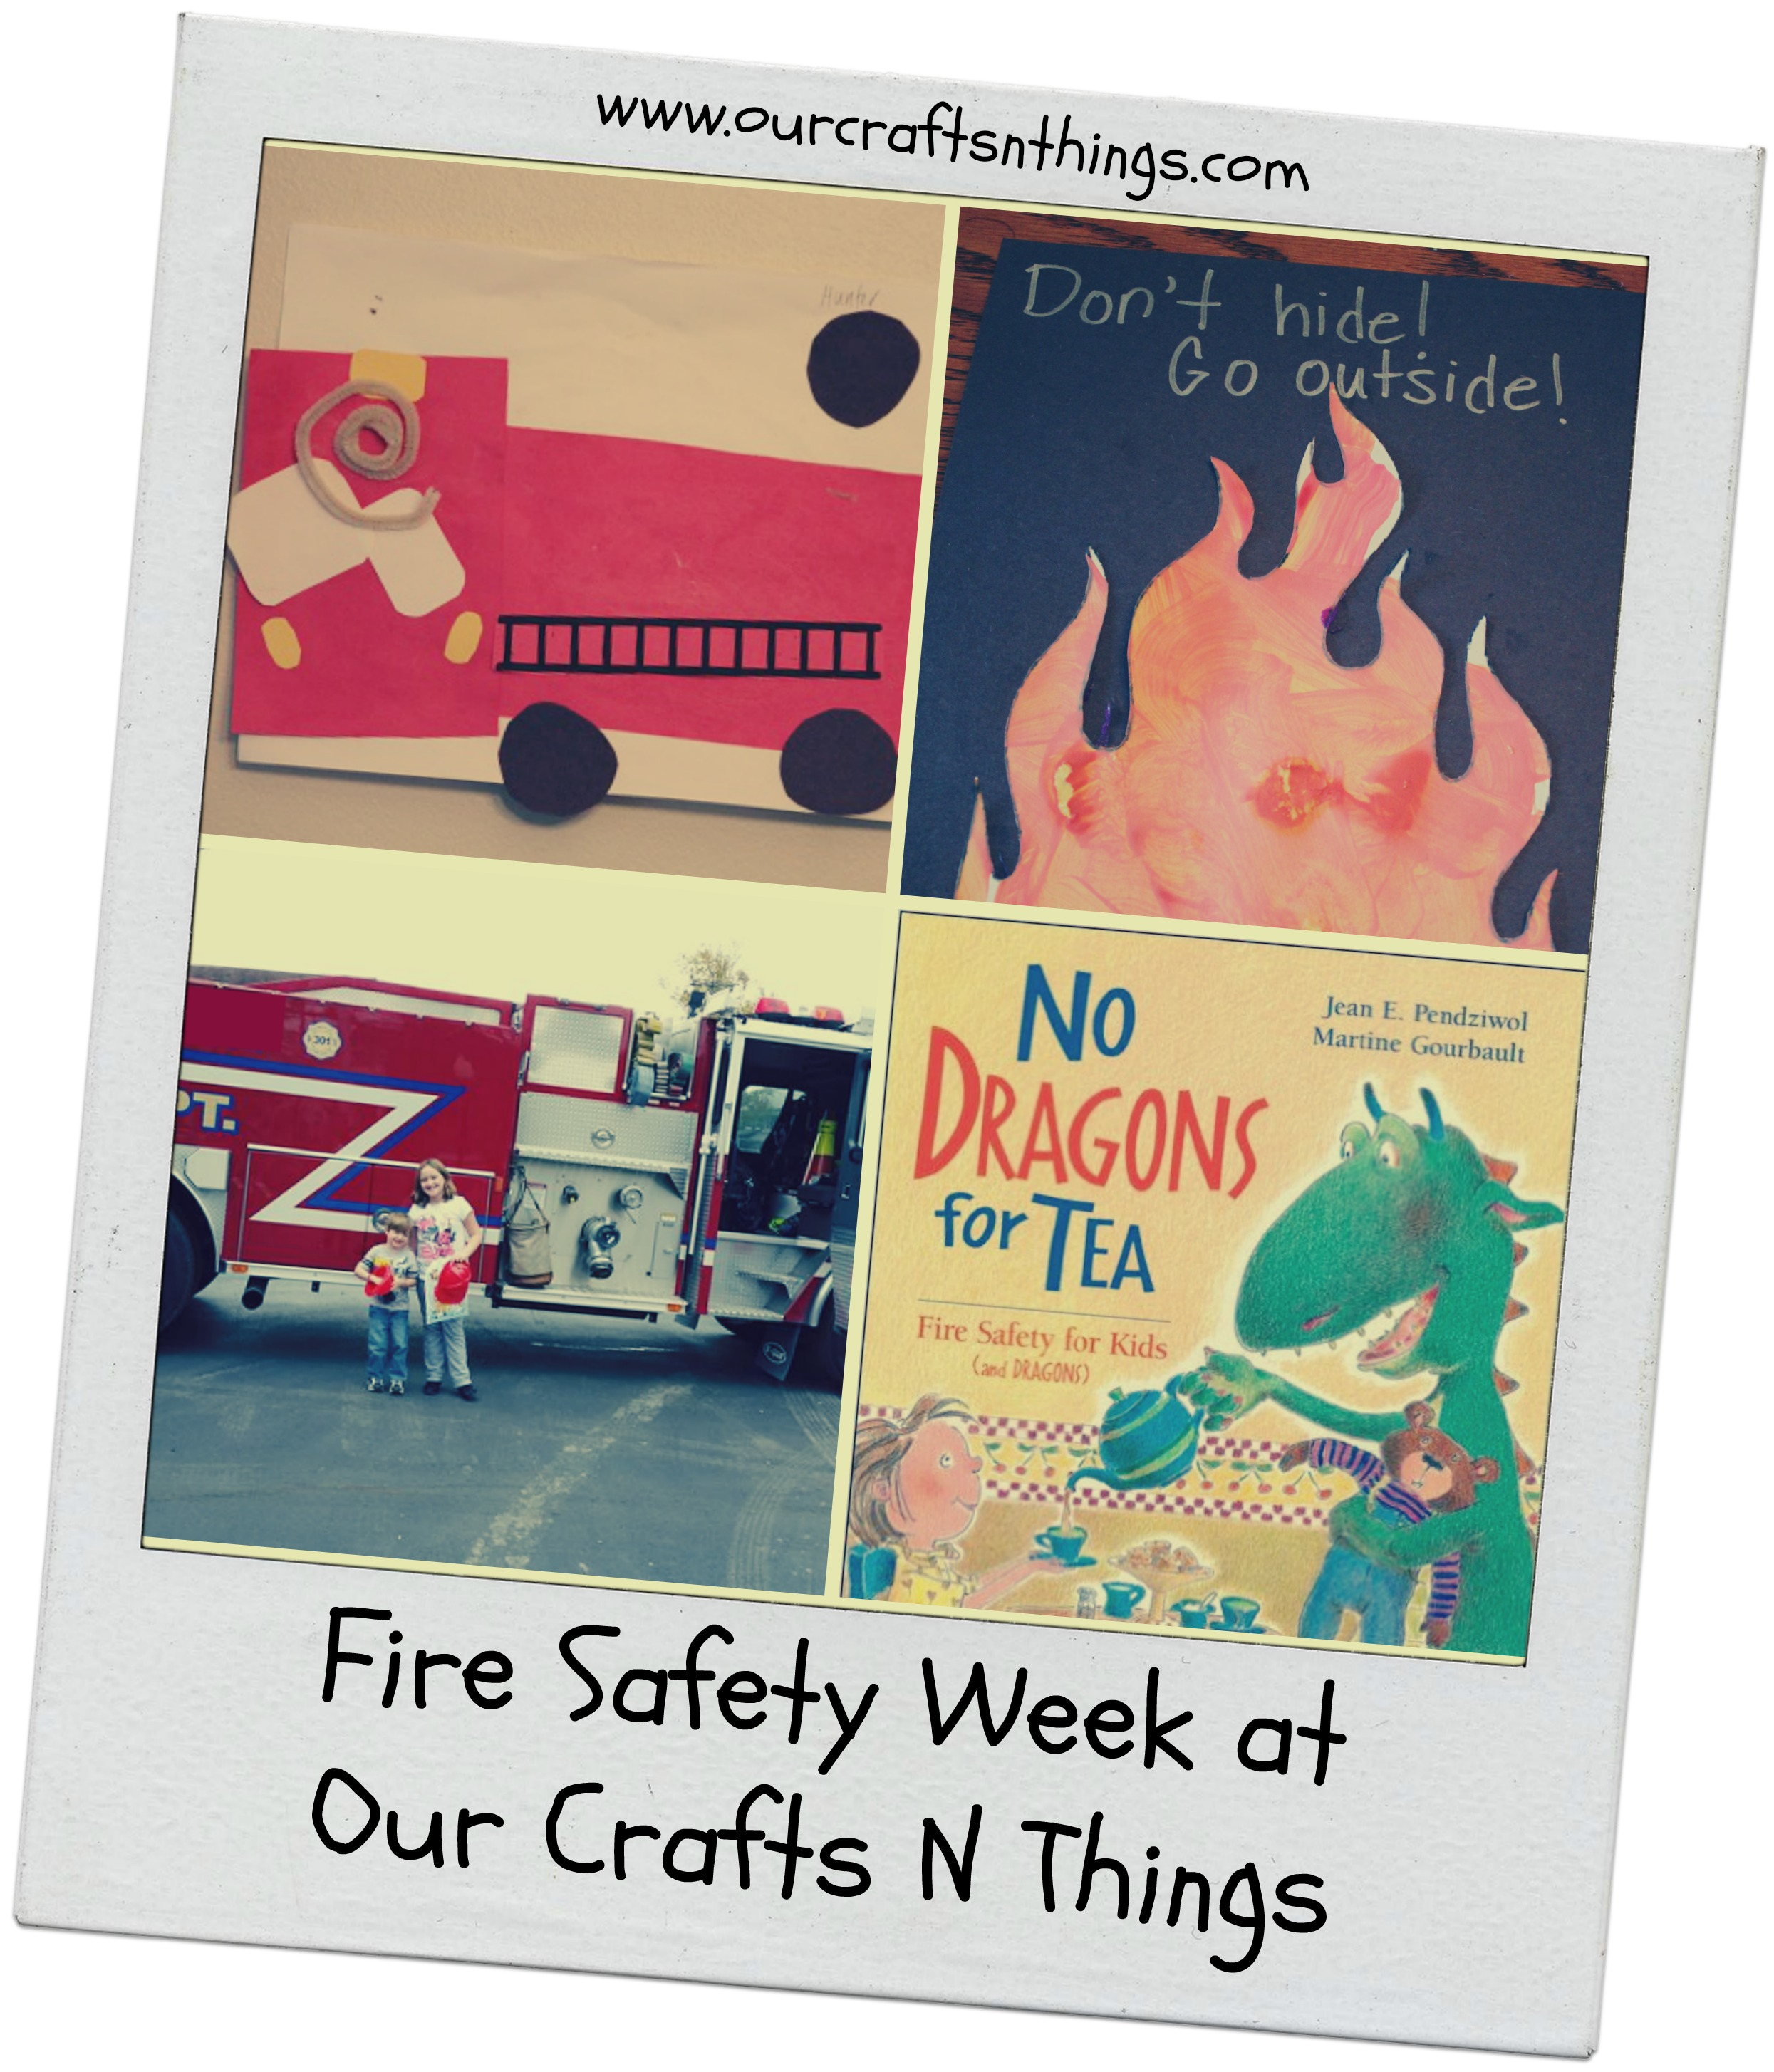 Our Crafts N Things Fire Safety Week